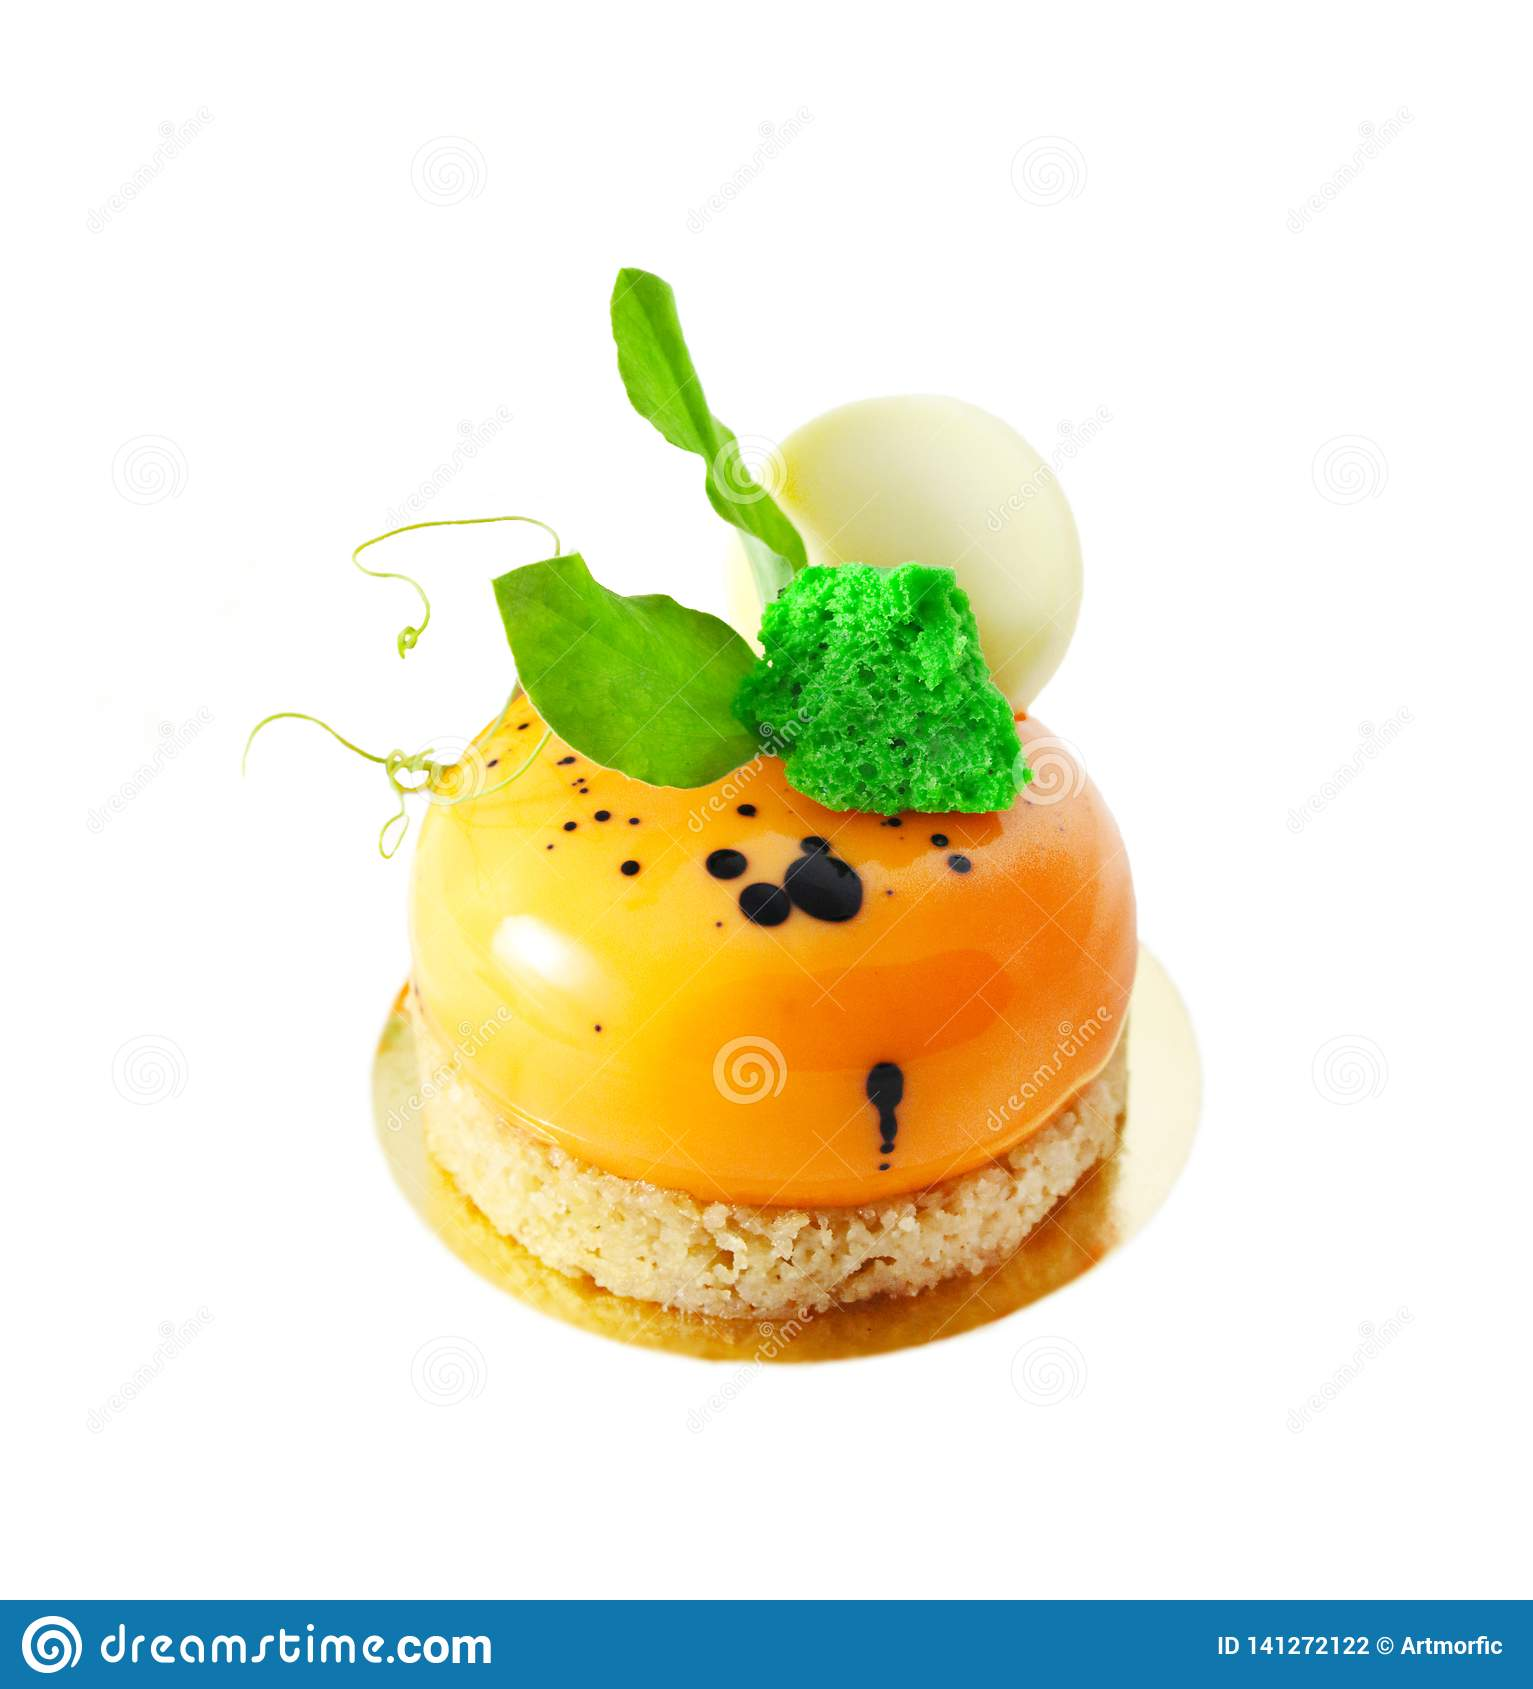 Orange carrot cake dessert with green leaves and white chocolate